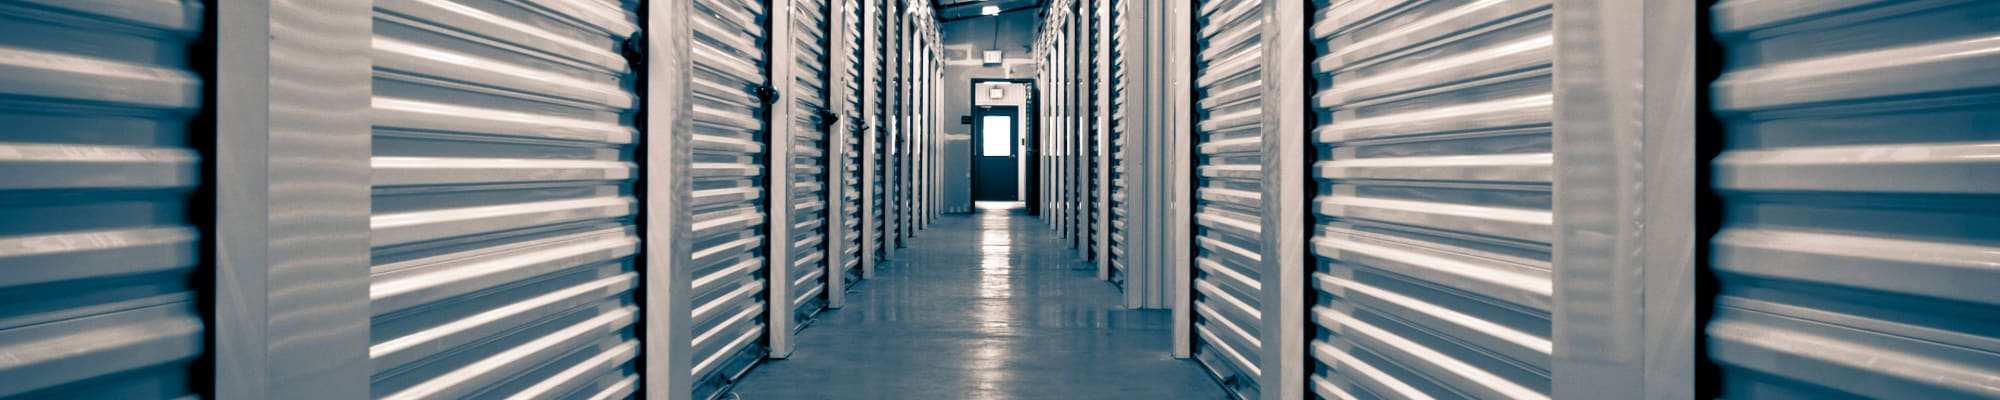 Store It All Self Storage - Lakeway storage solutions in Lakeway, Texas